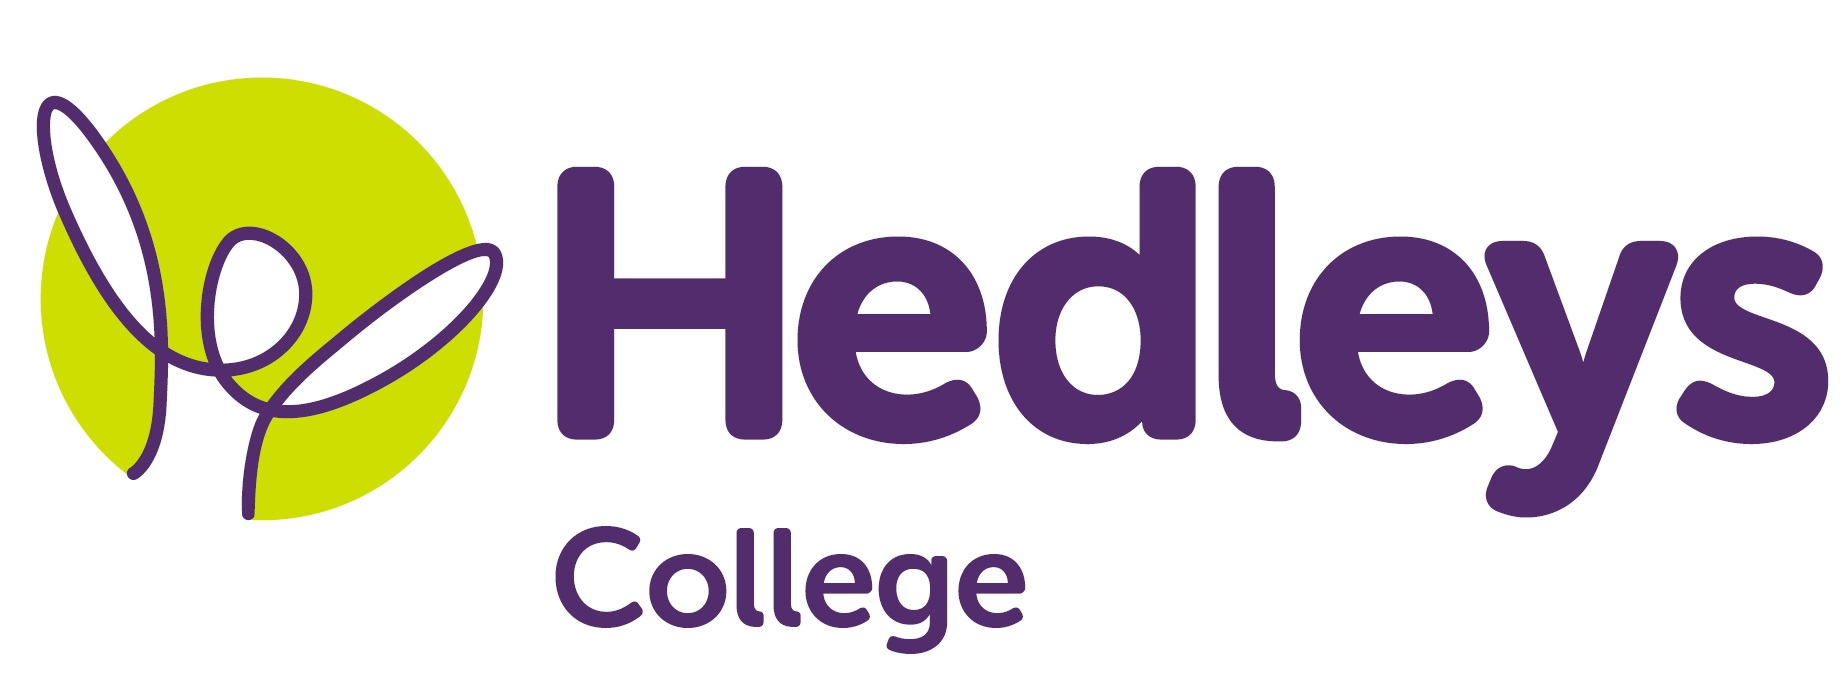 The logo of Hedleys College